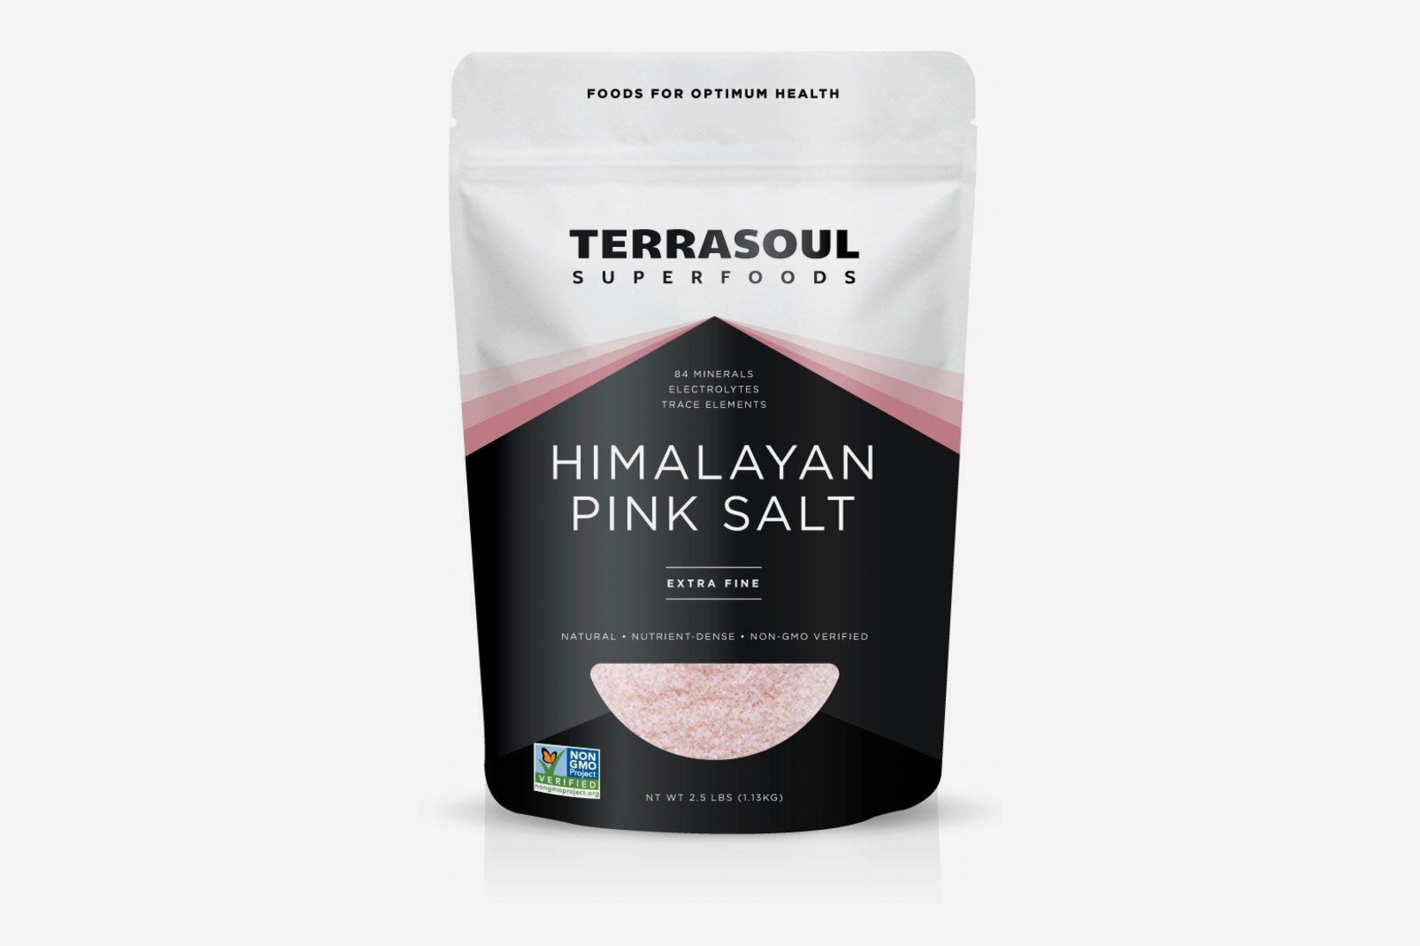 Terrasoul Superfoods Himalayan Pink Salt, 2.5 Pounds